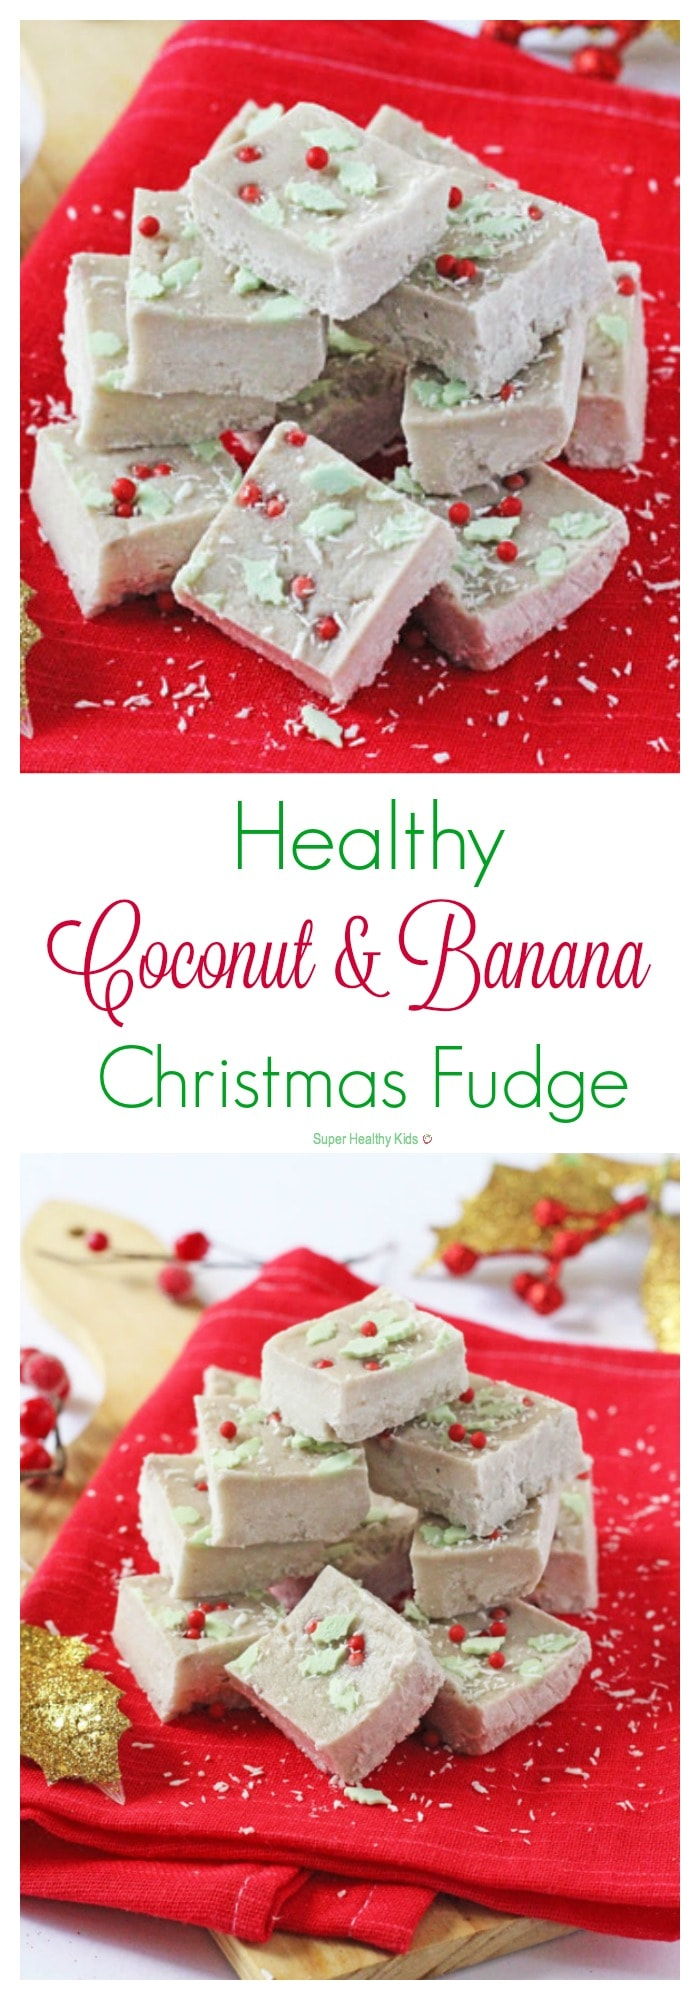 Healthy Coconut and Banana Christmas Fudge | Healthy Ideas for Kids